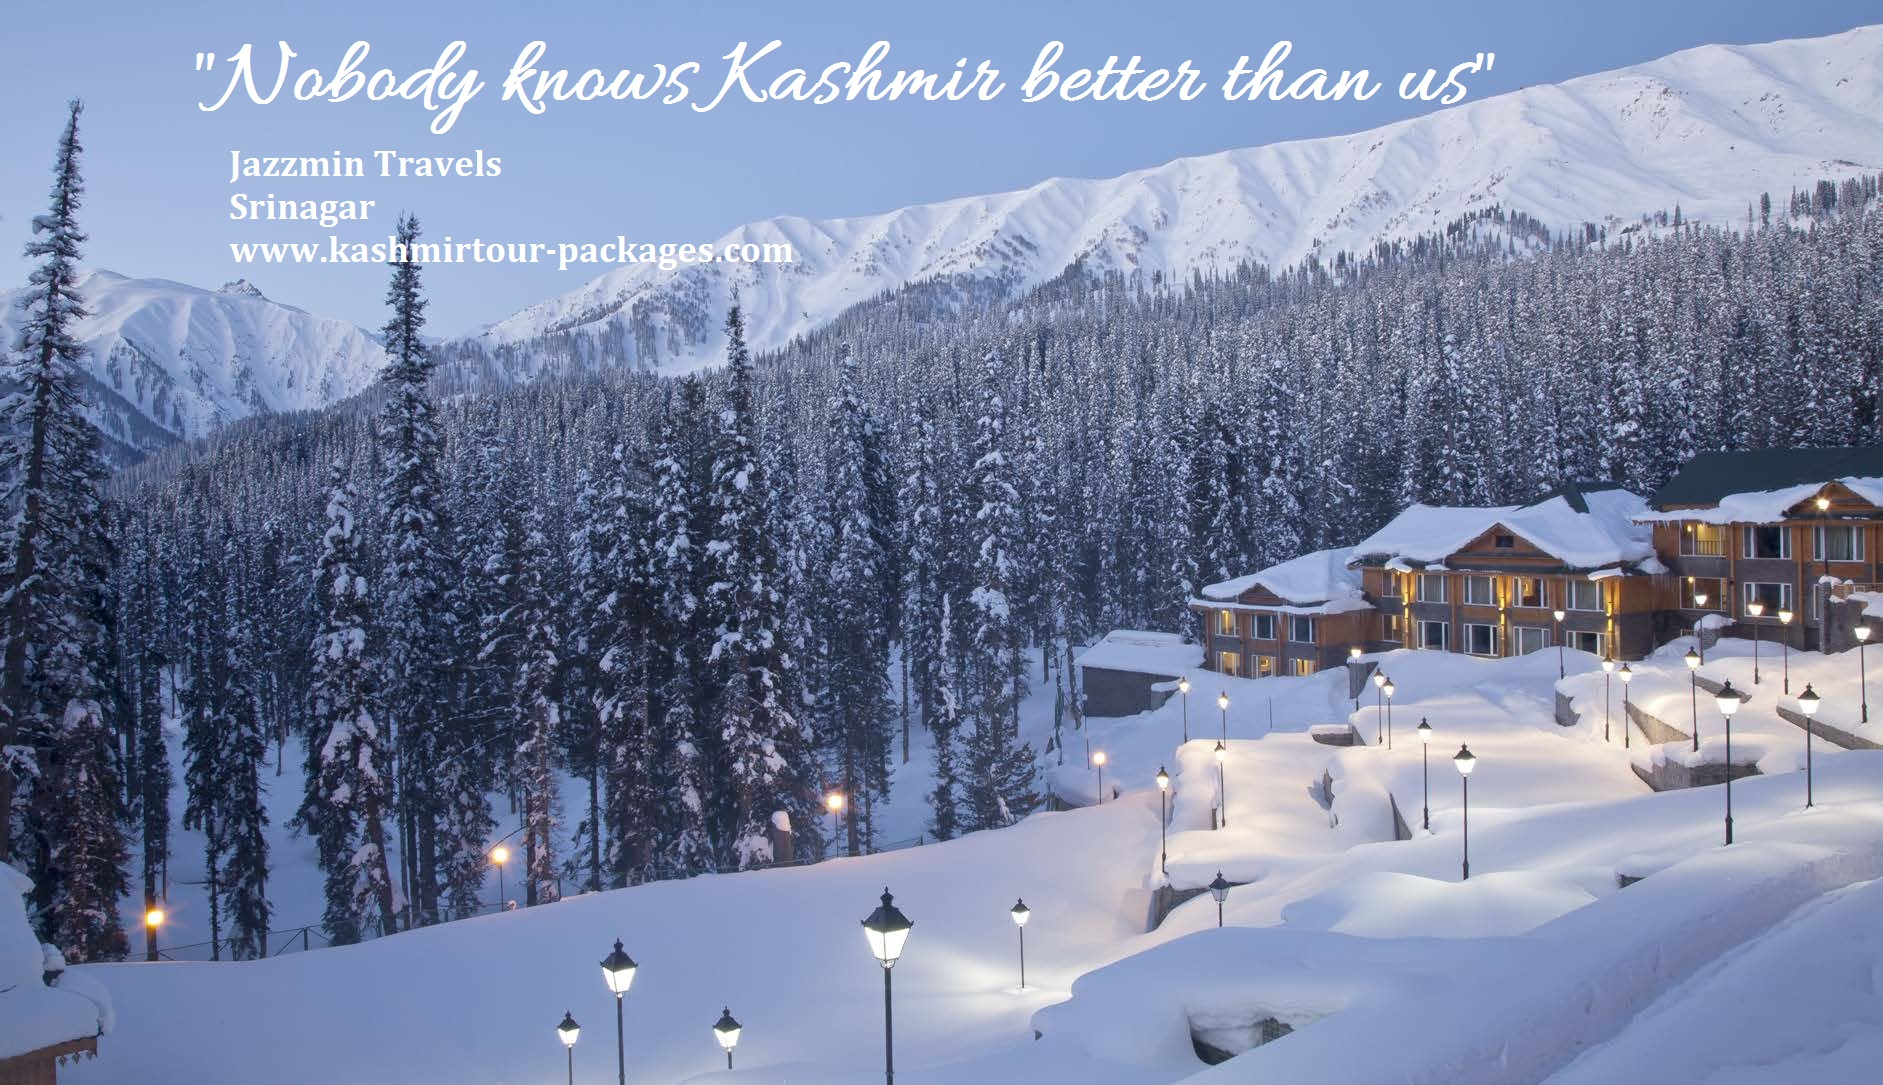 """""""Nobody knows Kashmir better than us"""". Kashmir Tour Packages from Jazzmin Travels."""